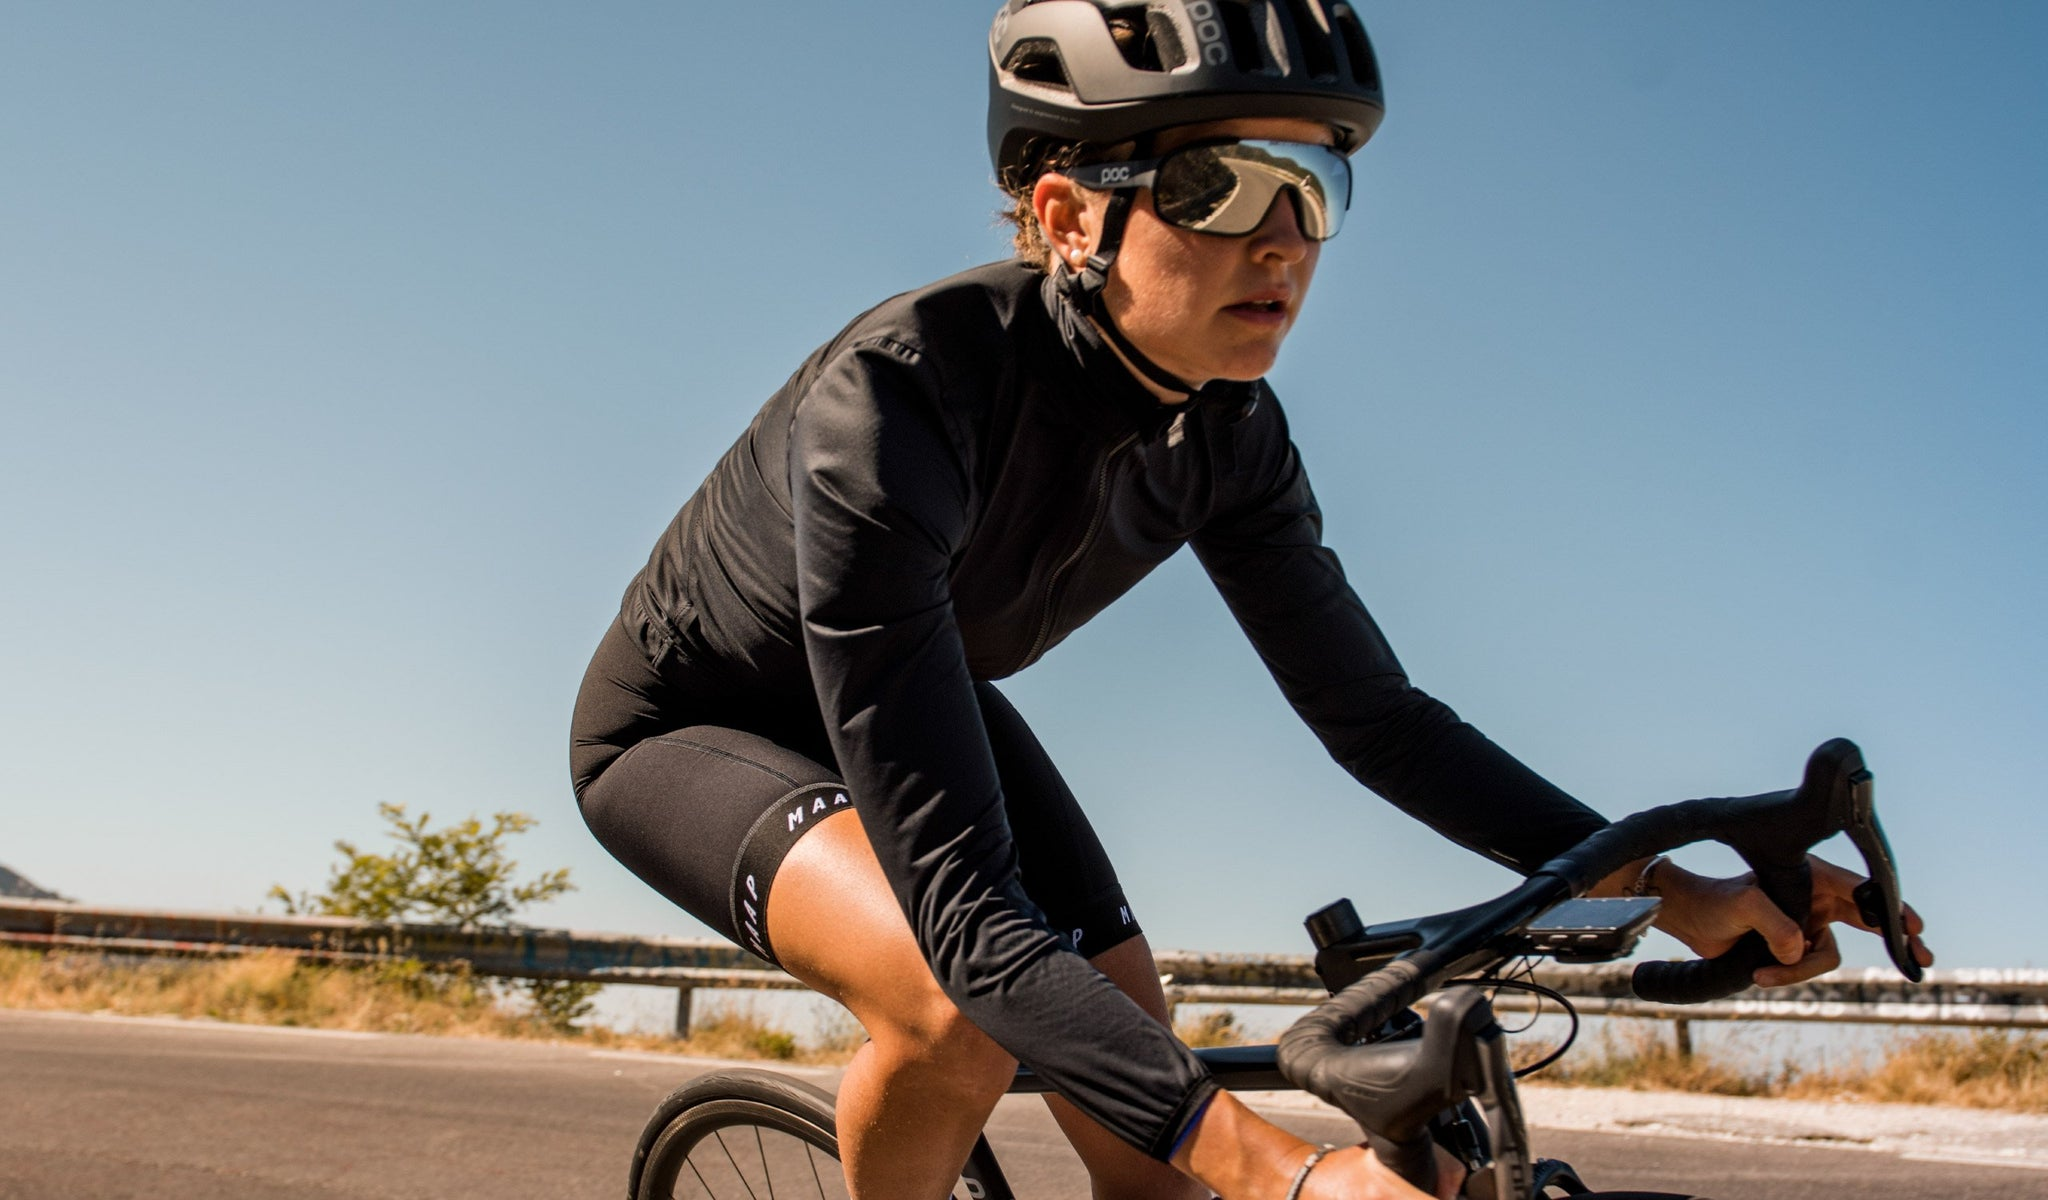 MAAP Women's Unite Team Cycling Rain Jacket in Black for riding in wet weather conditions.